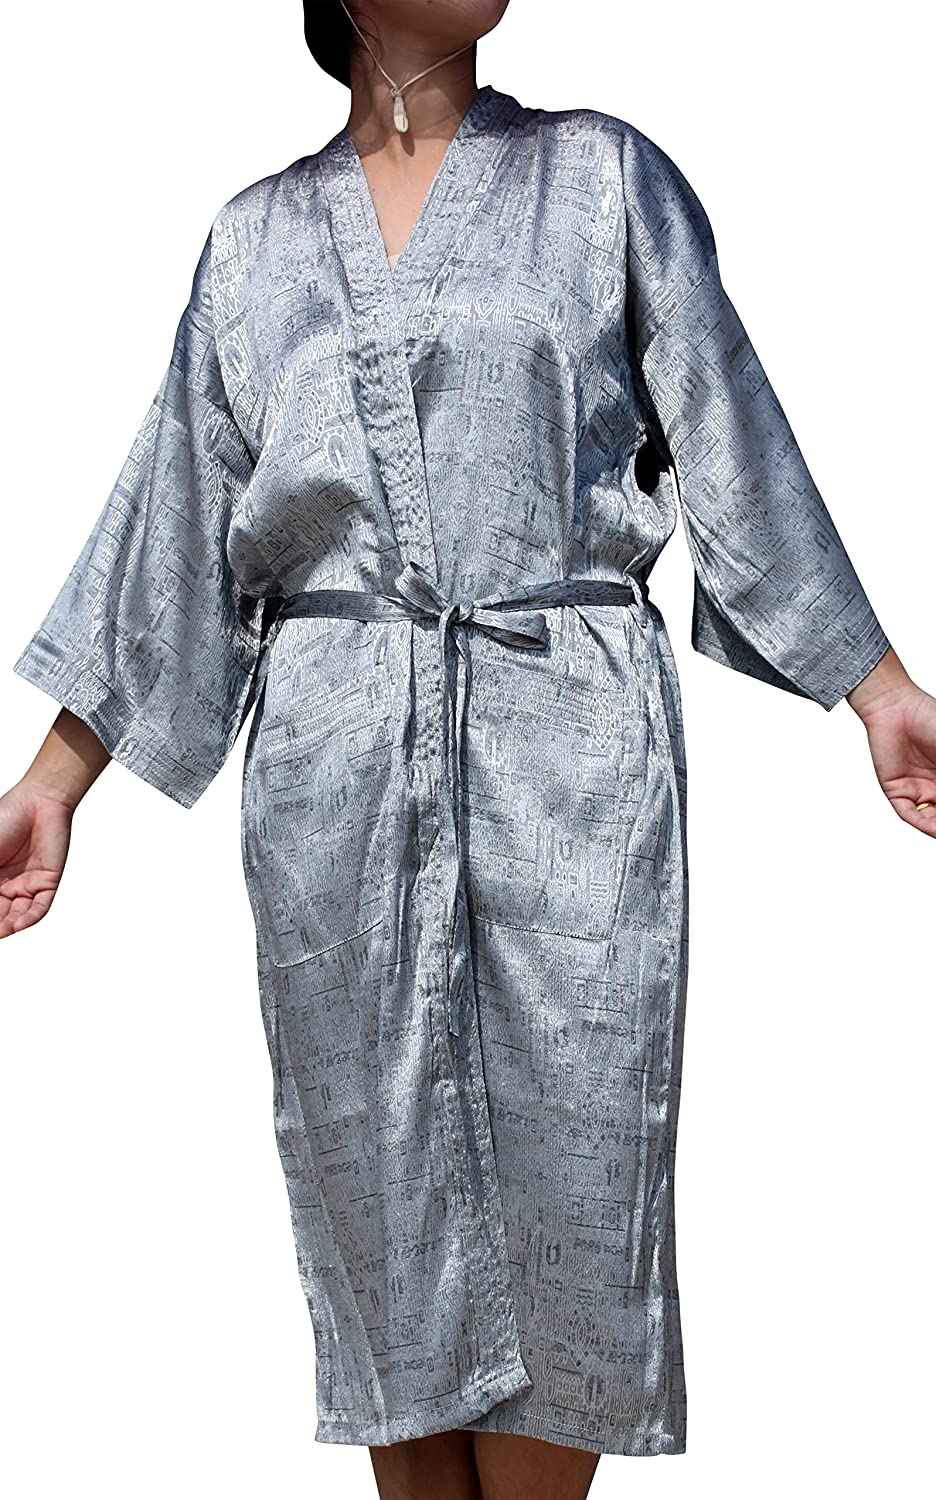 RaanPahMuang Thai Silk Lazy Sundays Night Gown Light Throwover Robe